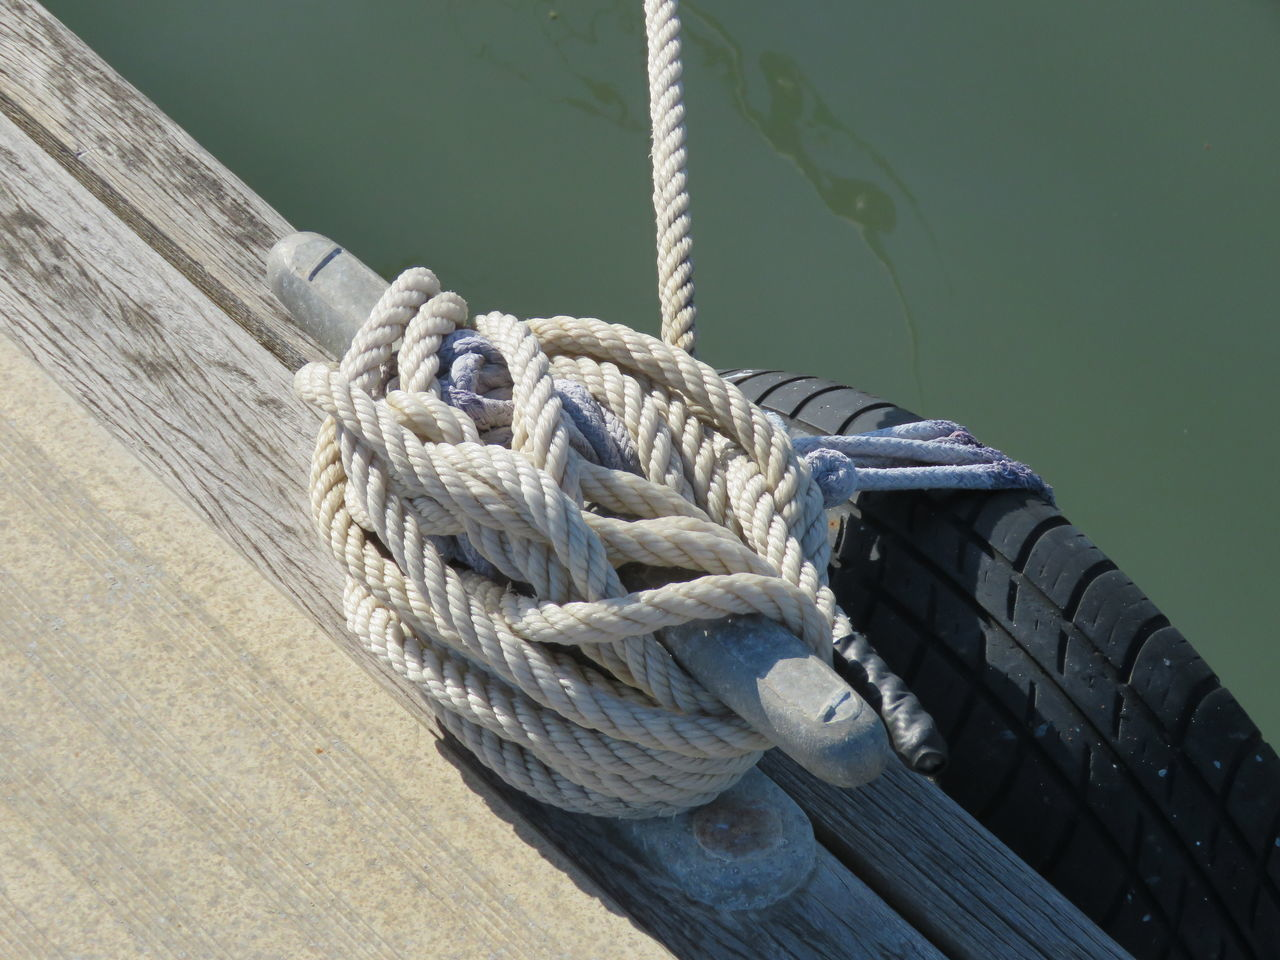 Boat Deck Check This Out Close-up Day EyeEm Best Shots High Angle View Knot Mooring Nautical Vessel No People Outdoors Pier Pulley Rigging River Riverside Rope Sailing Ship Strength Tied Tied Up Tyre Wood Pier Yacht Yachting